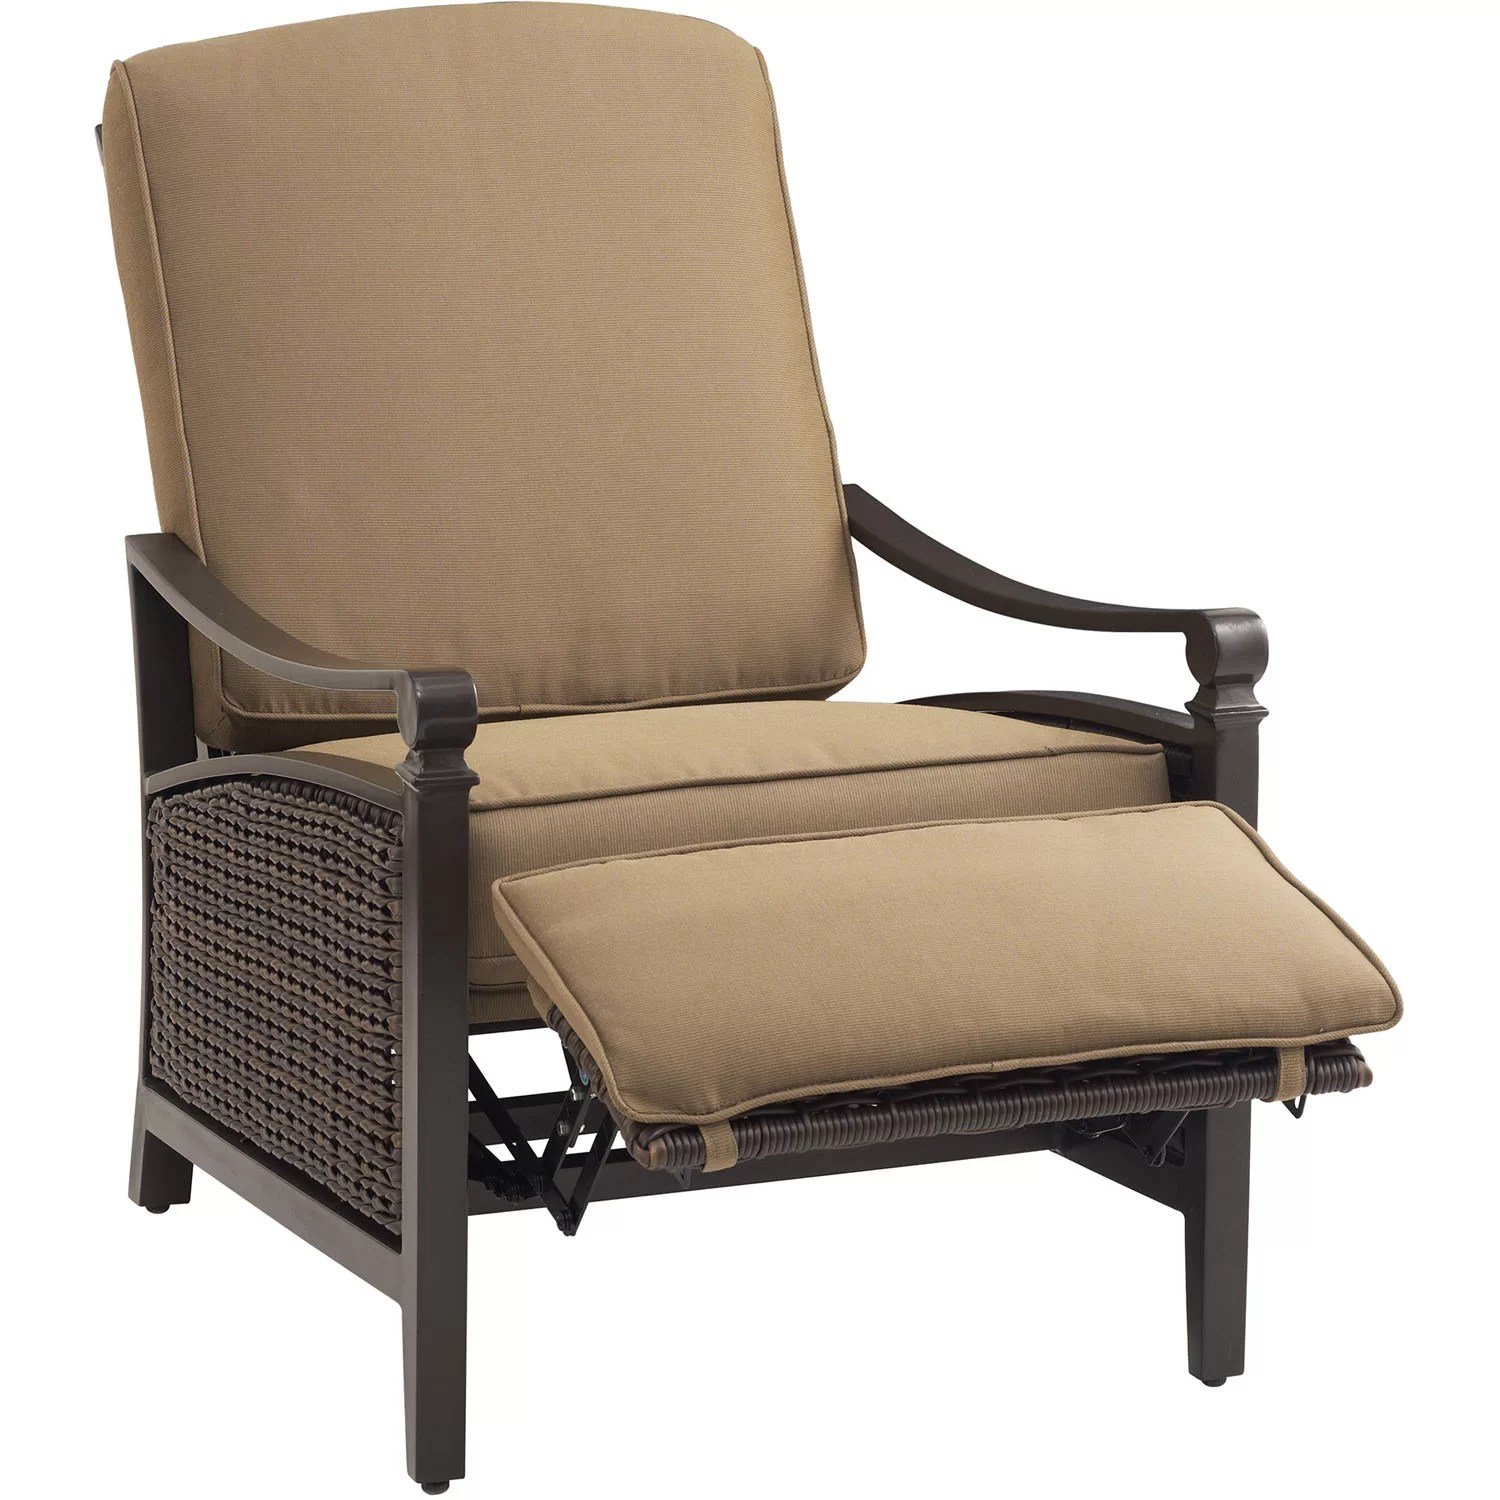 Outdoor Reclining Chair La Z Boy Carson Luxury Outdoor Recliner Chair With Cushion